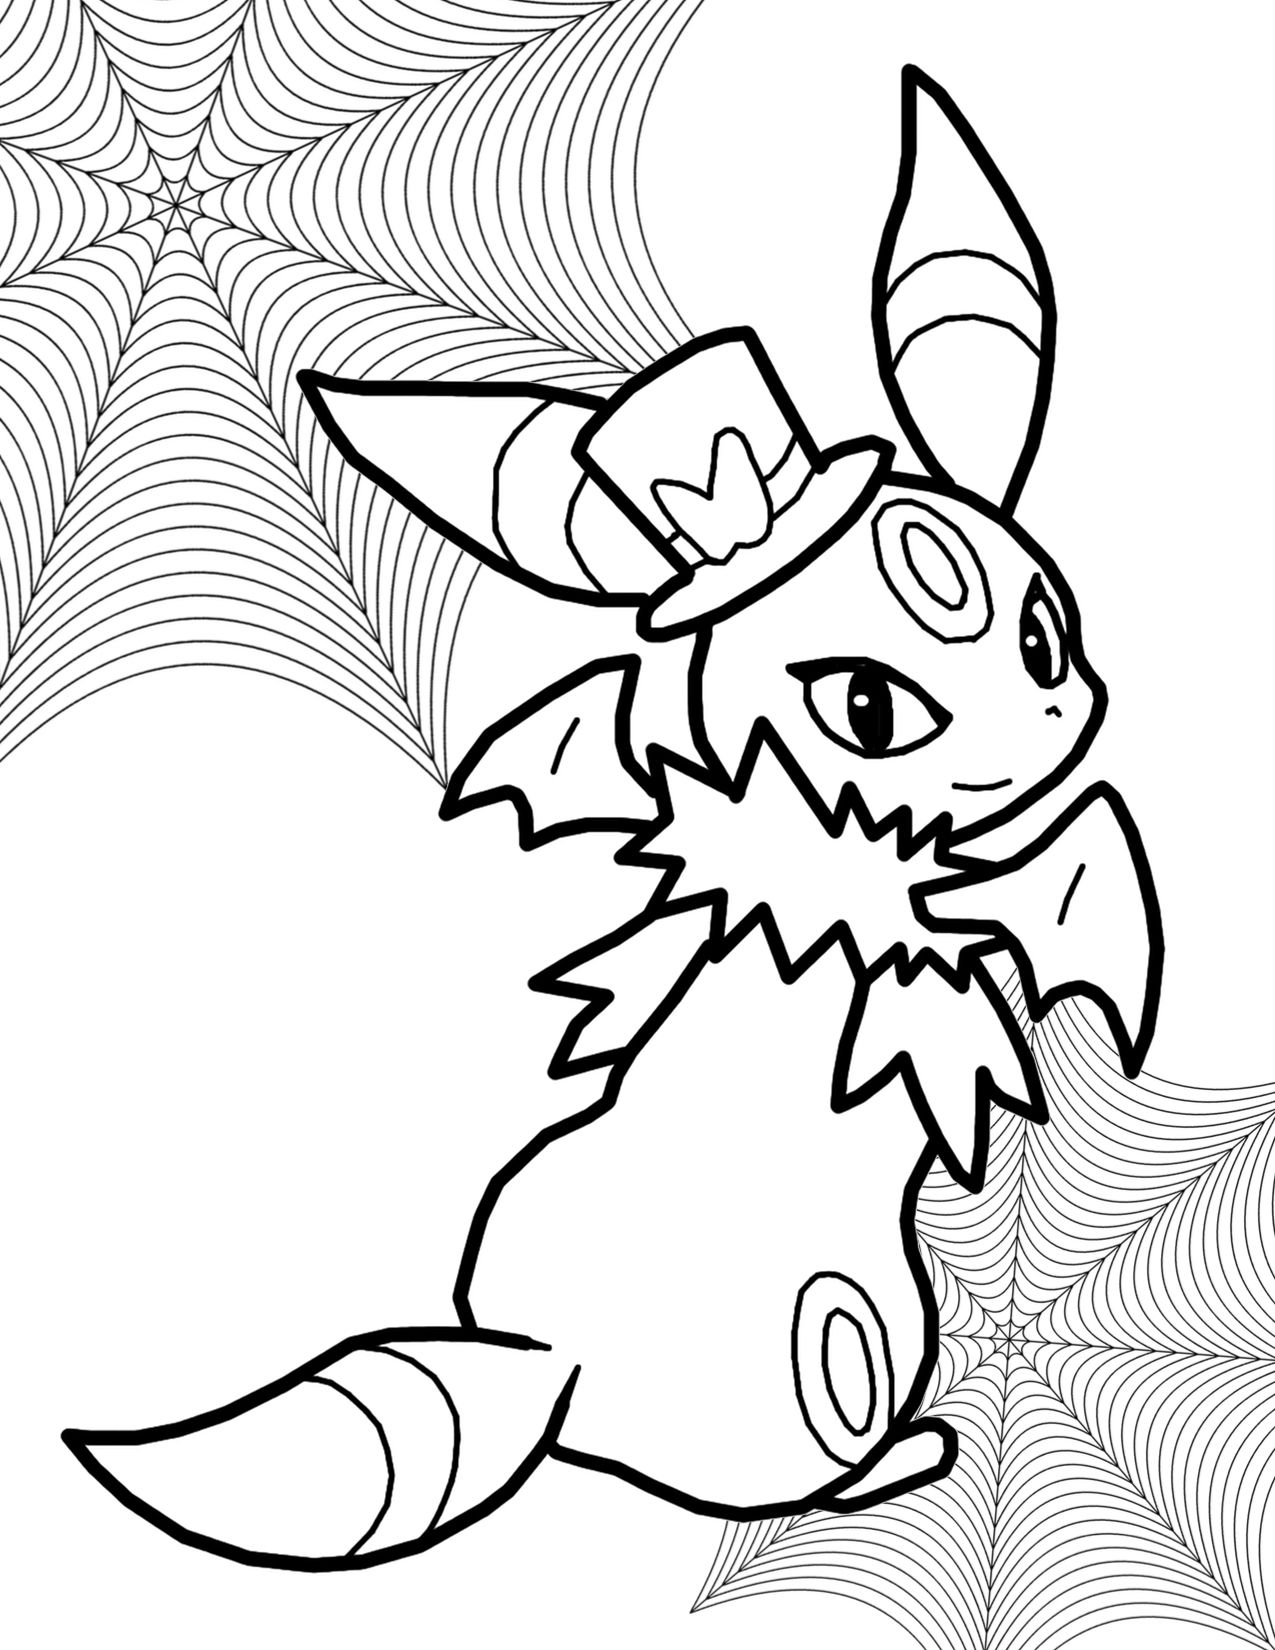 here is the last of the halloween coloring pages i made have a